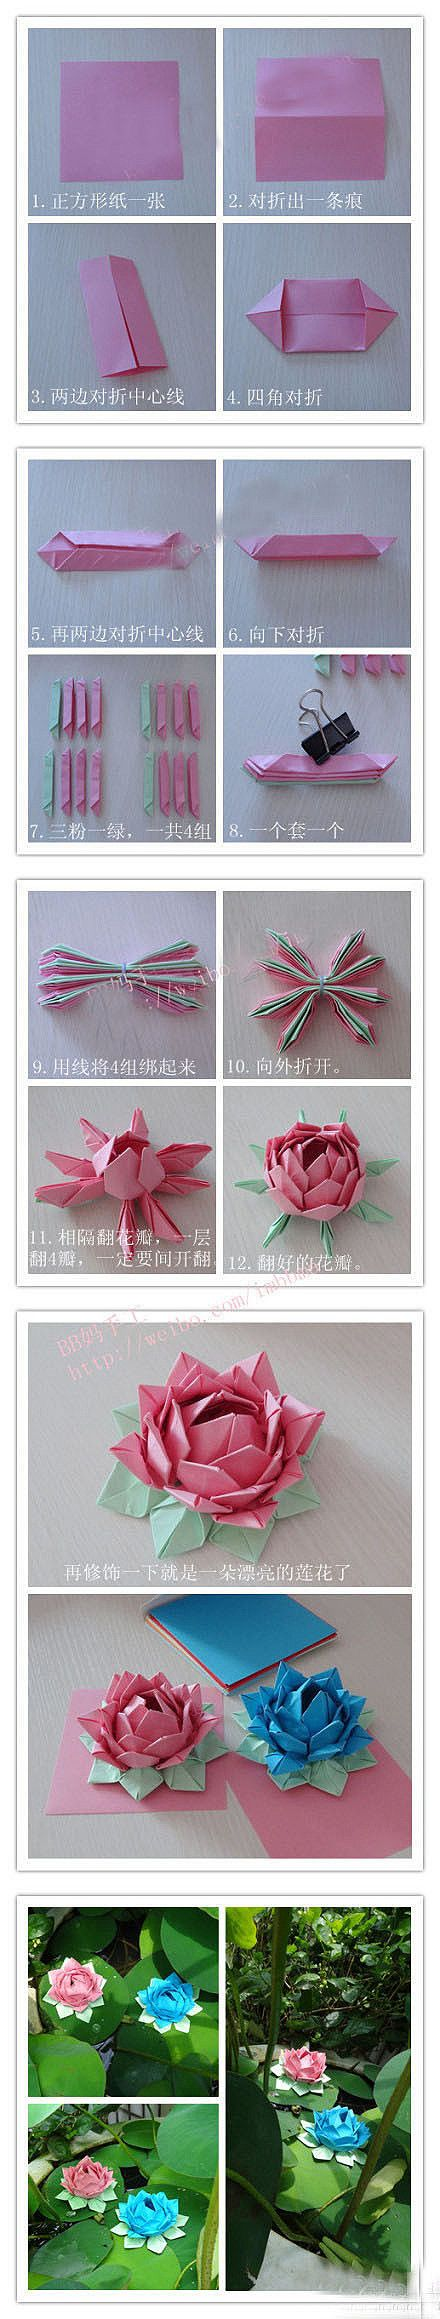 Paper rose kids crafts pinterest diy paper flower and origami diy origami artichoke flower i dont know what this flower is called so i obviously made that name up regardless i think this is a cool looking paper izmirmasajfo